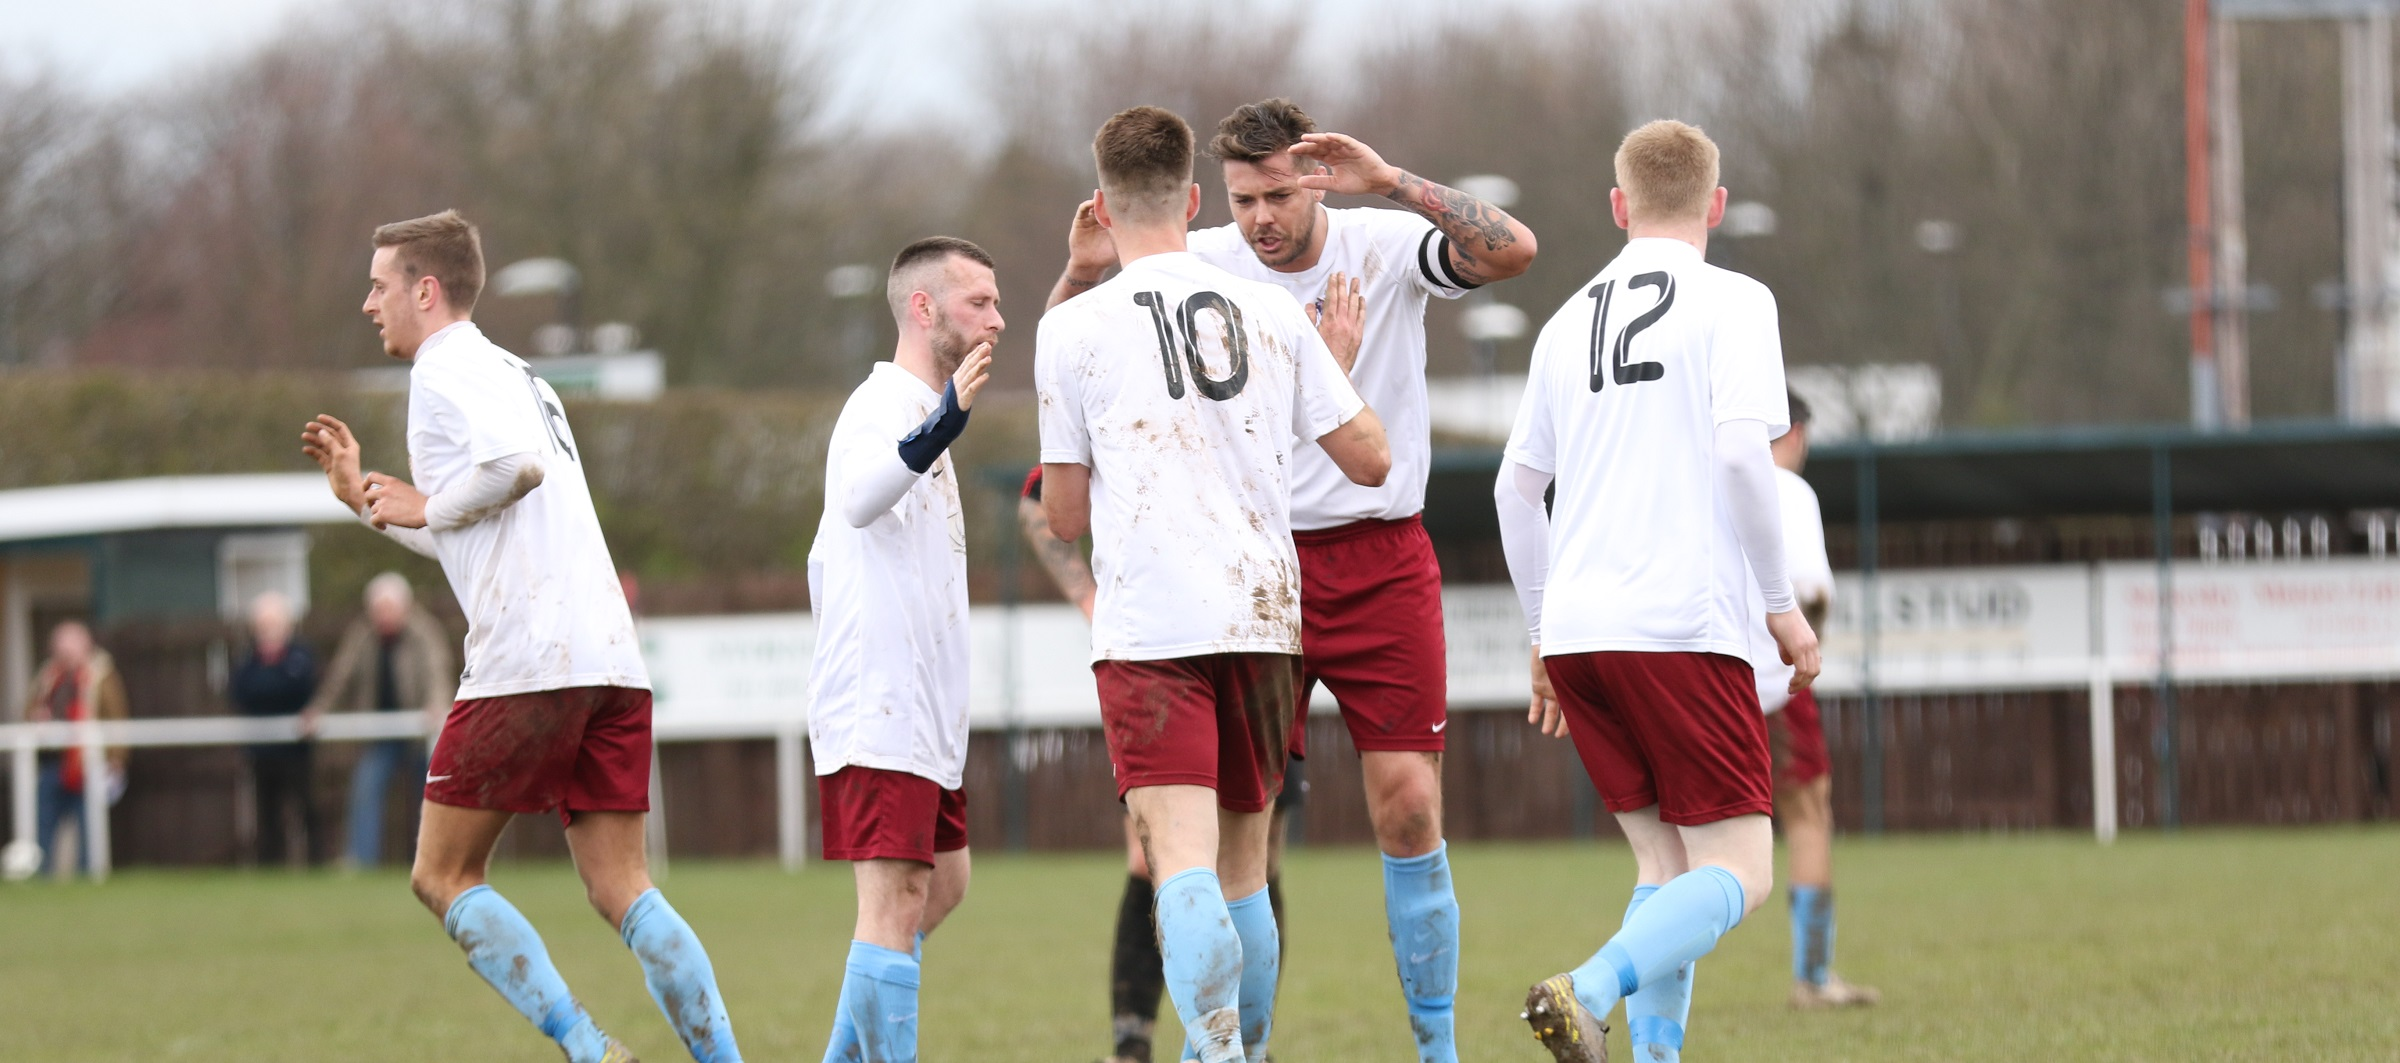 Preview: Easington Colliery vs South Shields